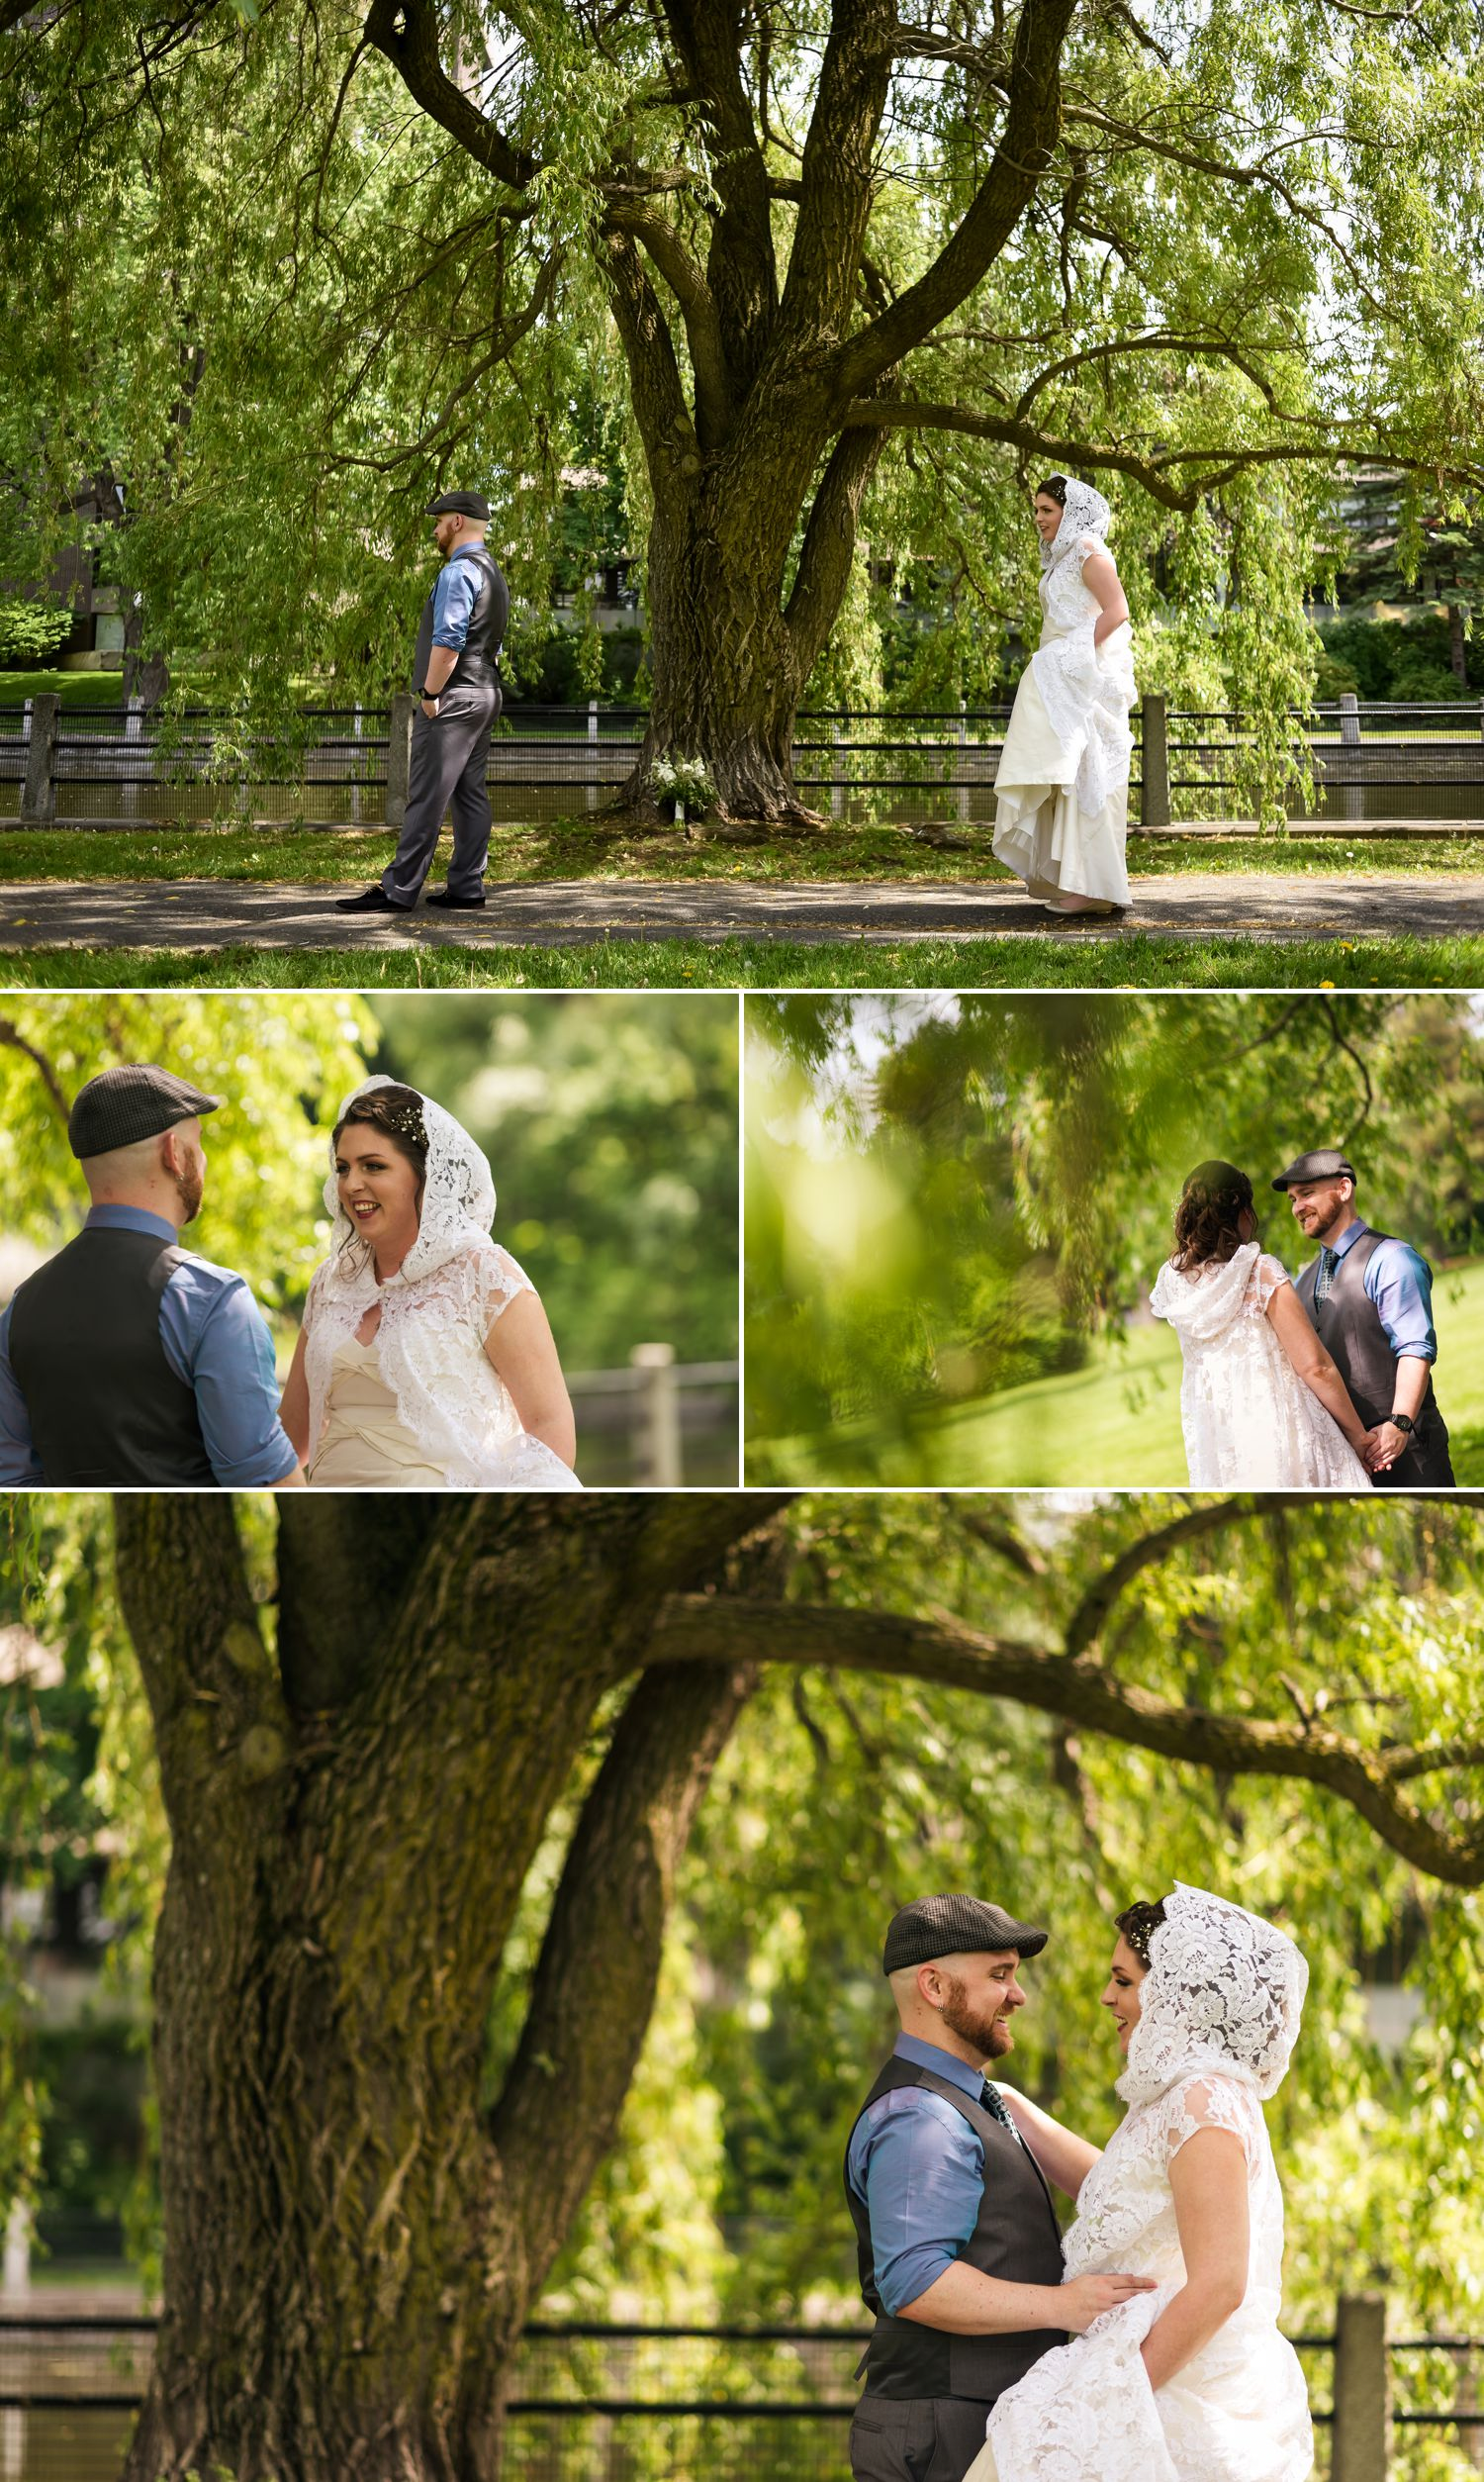 The bride and groom during their 'First Look' at Linden Terrace by the Rideau Canal in downtown Ottawa